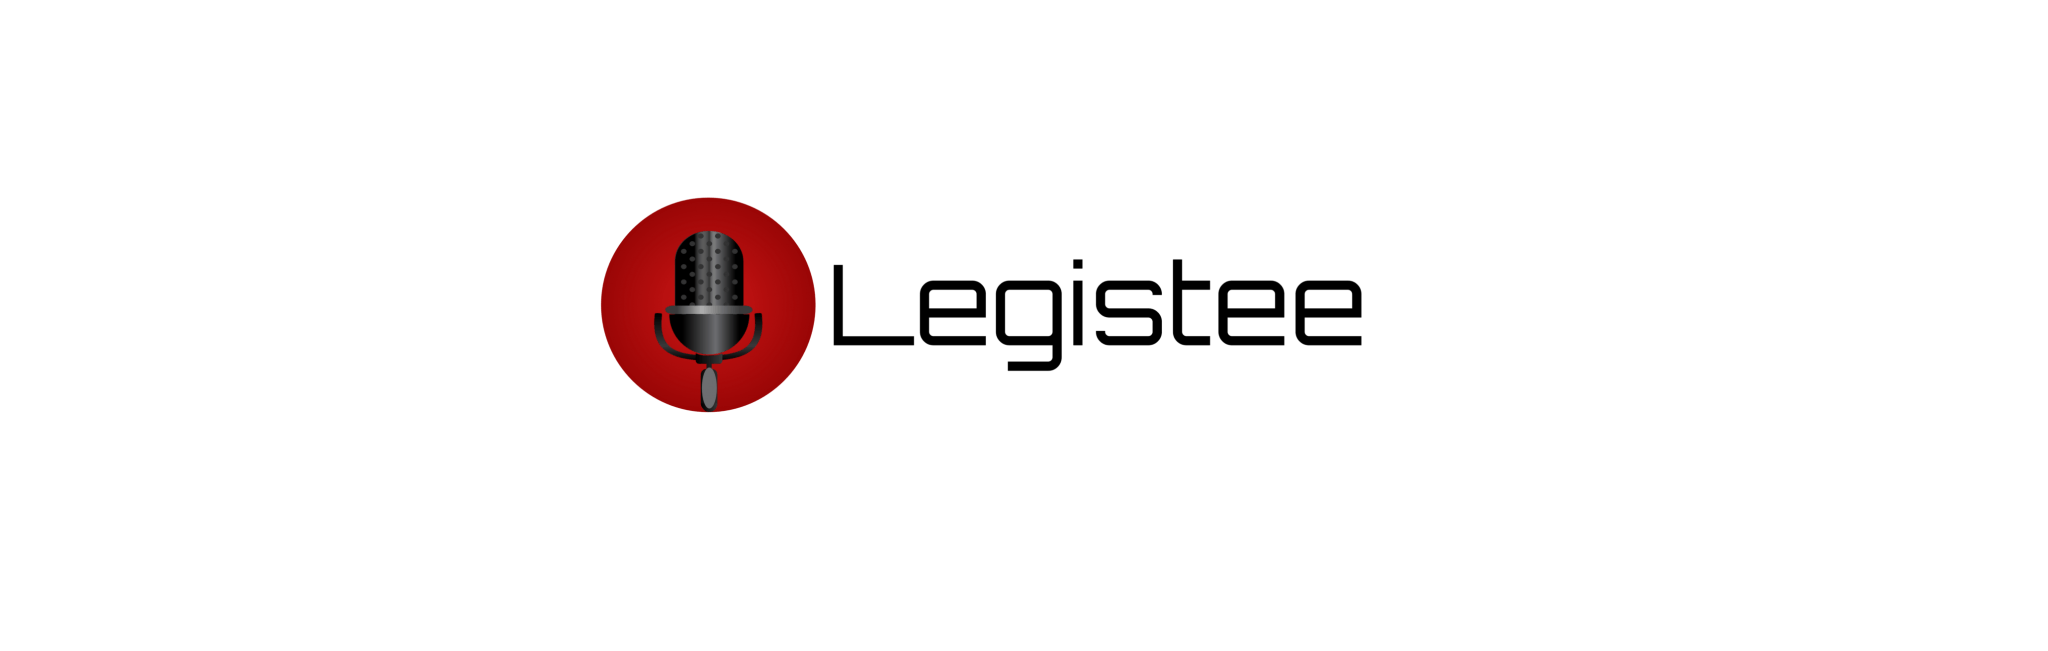 Digital Voice Assistant Software (Free Download) | Legistee for Law Firms